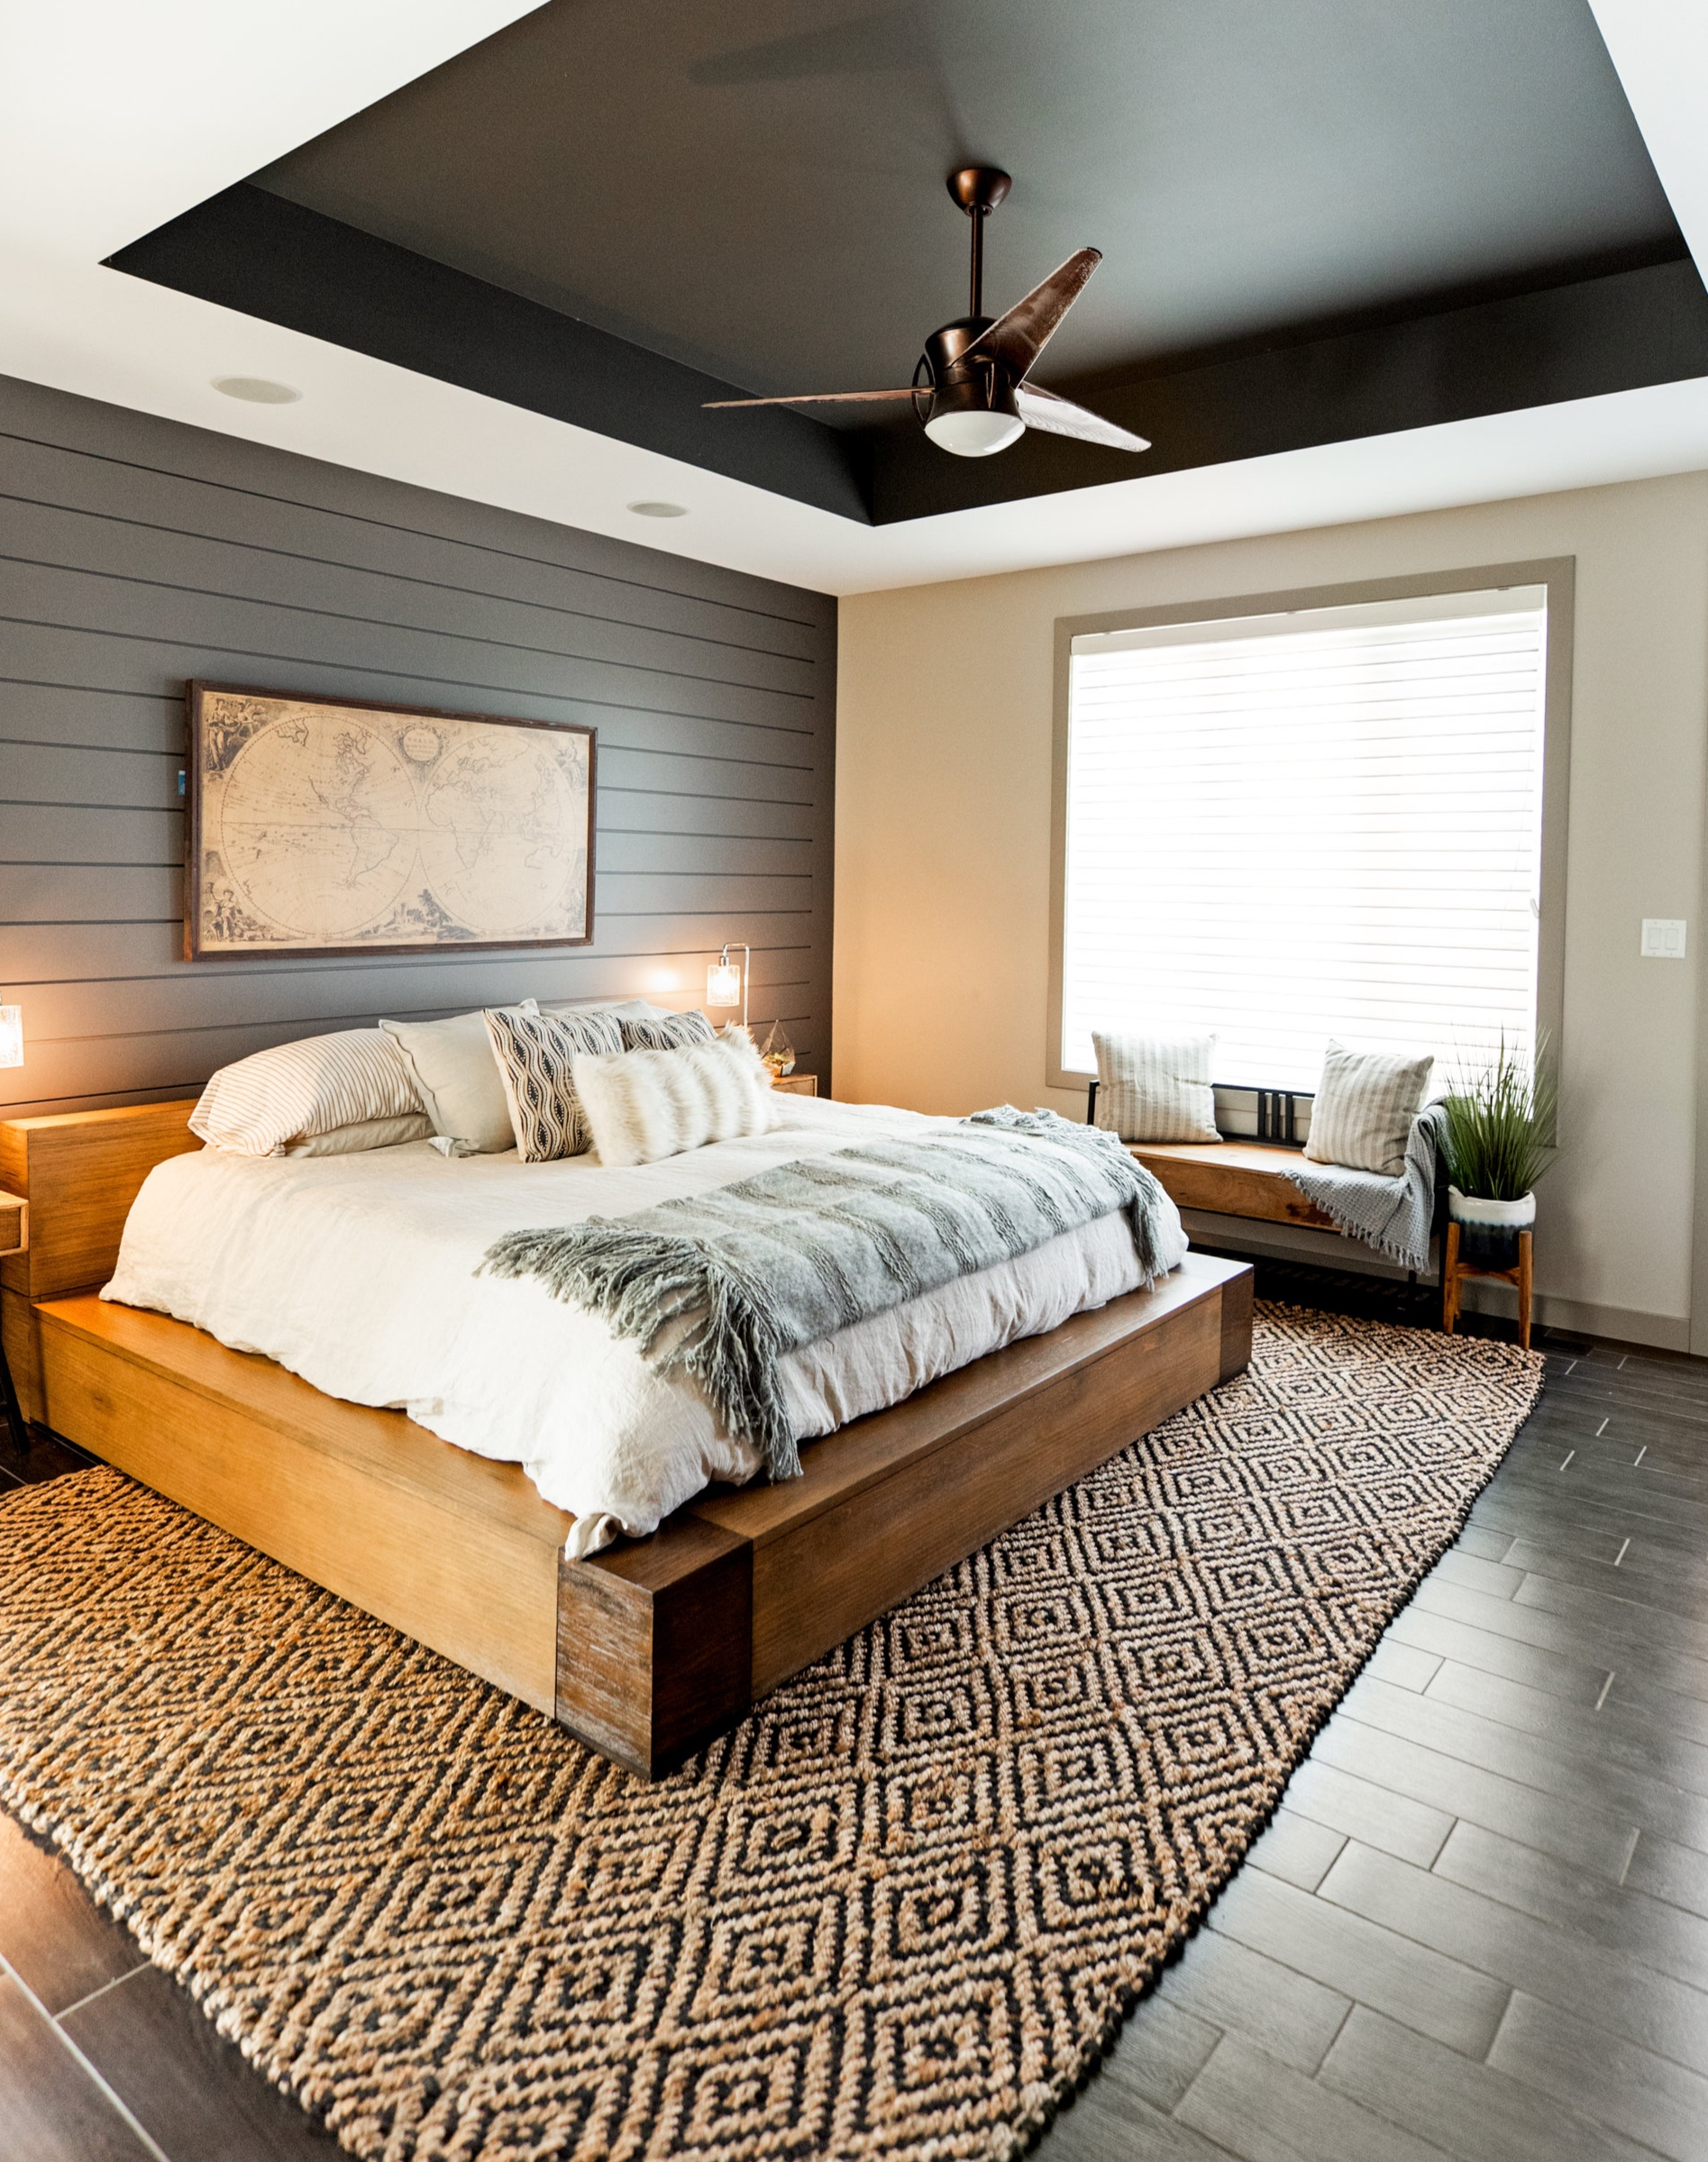 ENchant Bedroom & Living Space - Enchant, AB